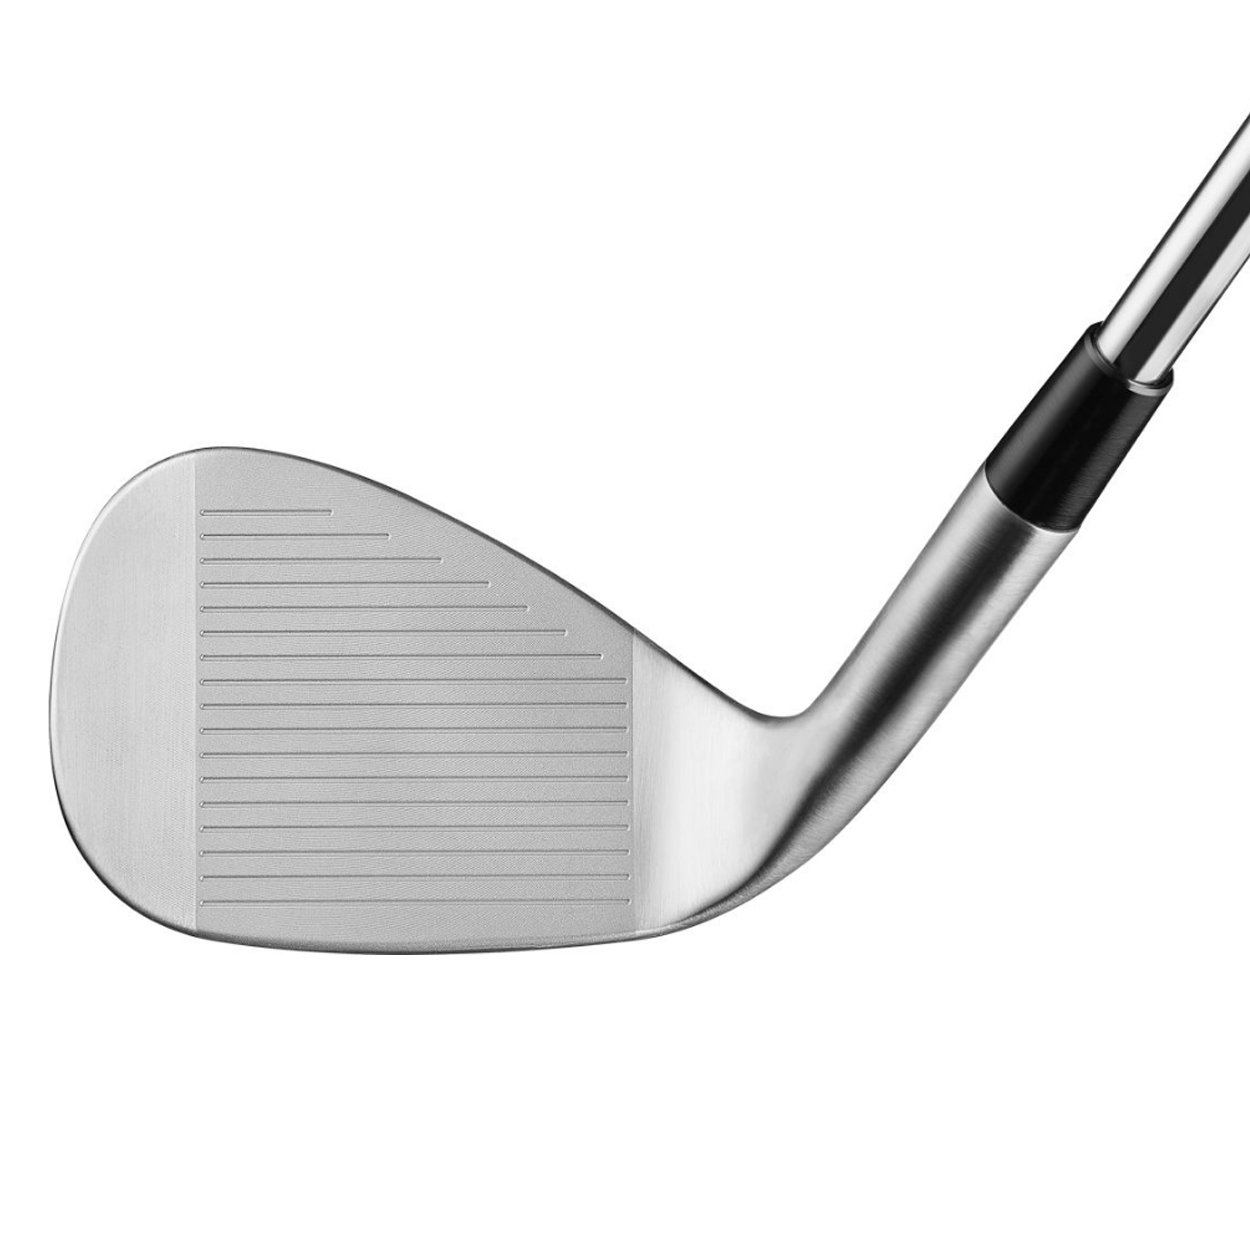 TaylorMade Golf Clubs ATV Grind Chrome Wedge, 52°/09°(GW) Steel Wedge Flex Shaft by TaylorMade (Image #2)